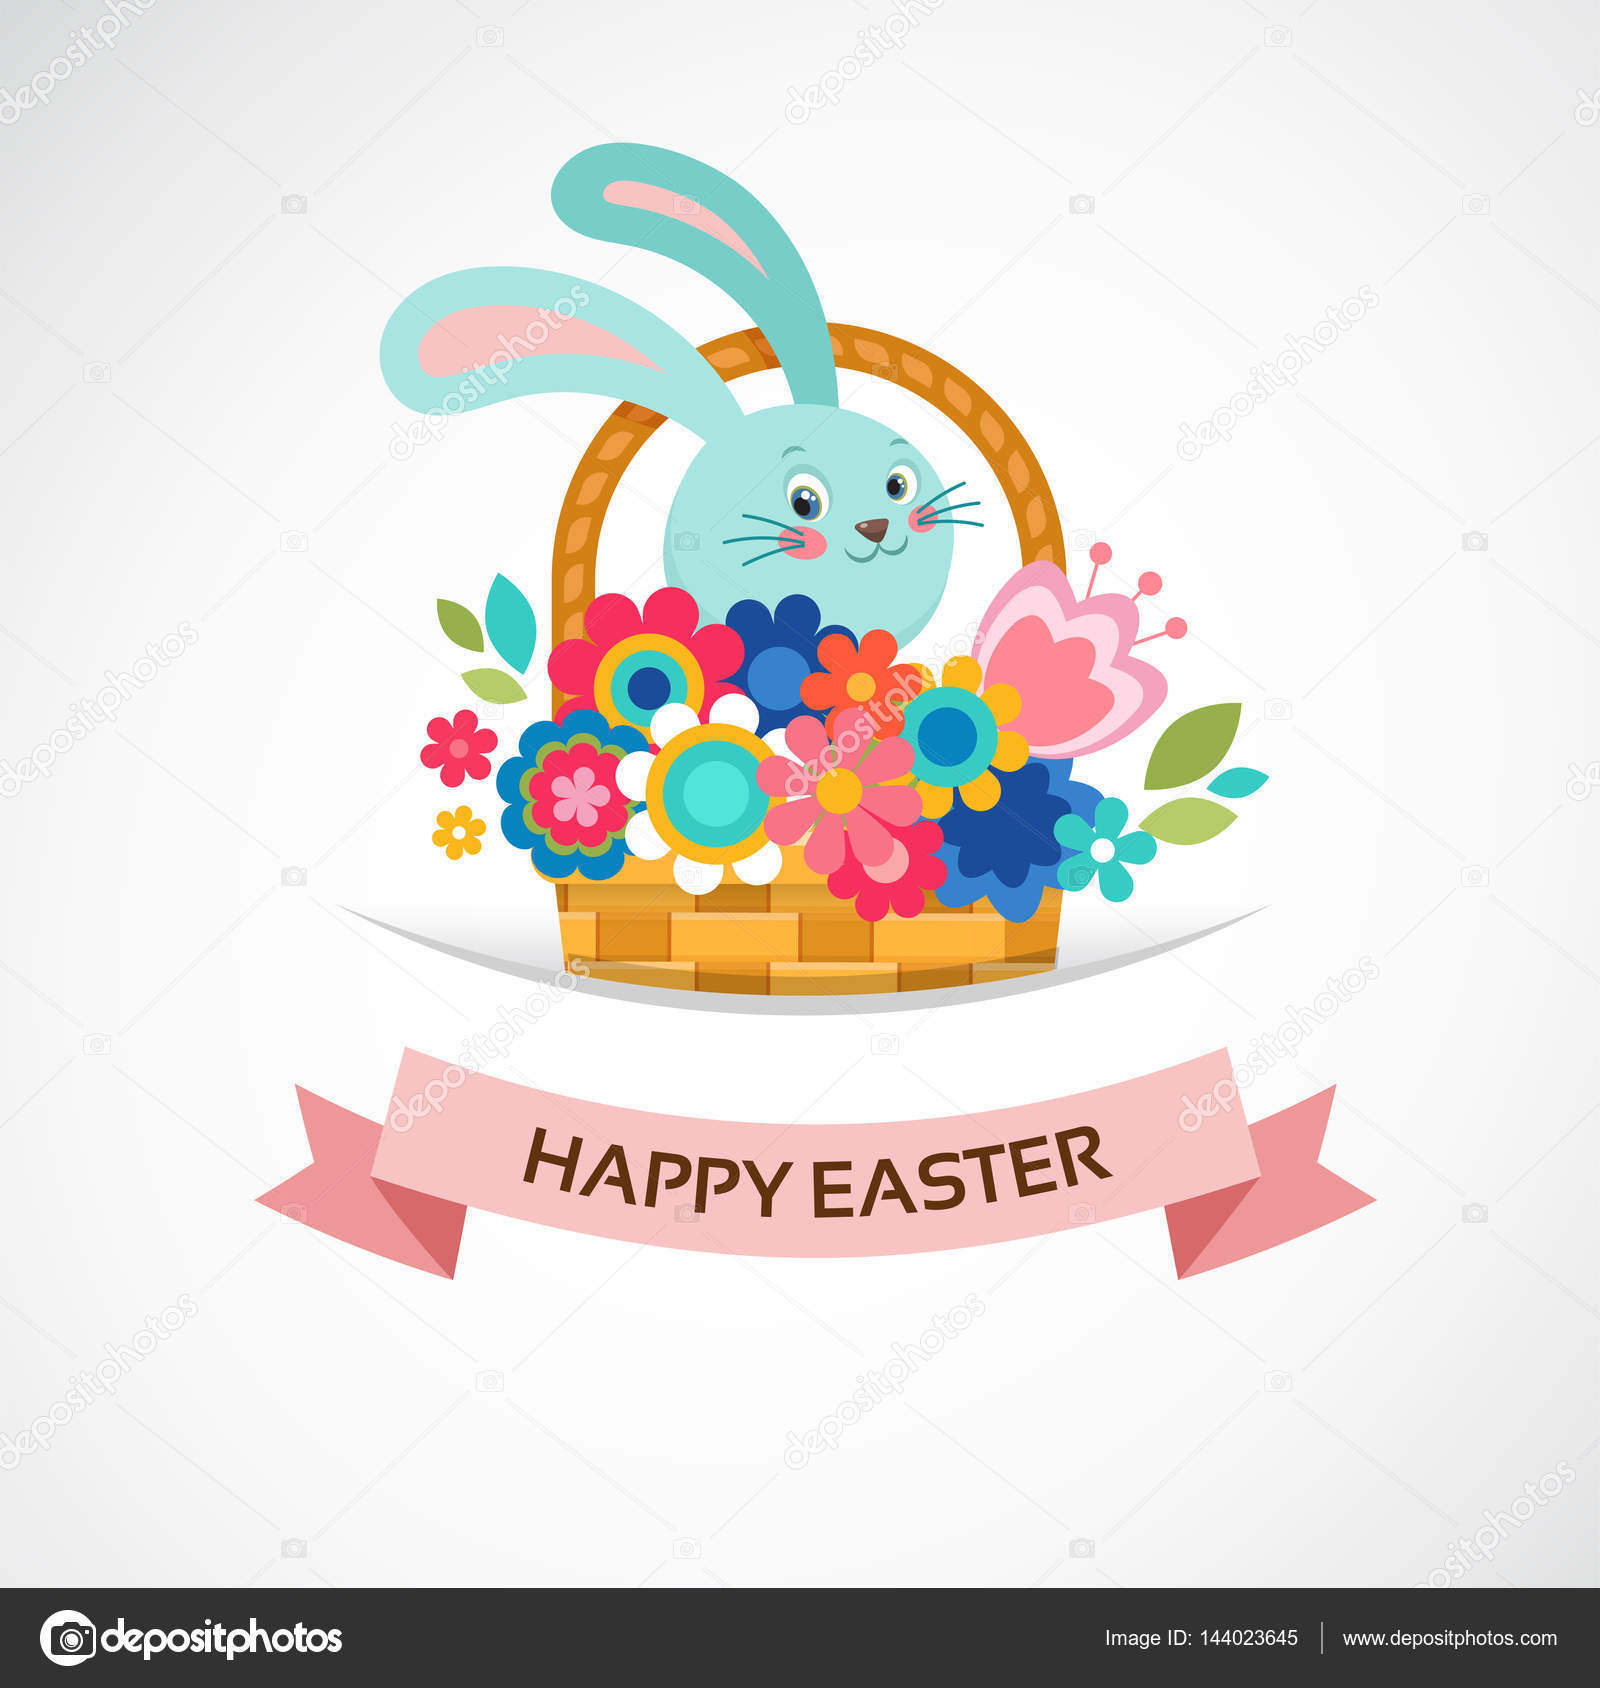 Happy easter greeting card basket with flowers and eggs poster happy easter greeting card basket with flowers and eggs poster bunner illustration m4hsunfo